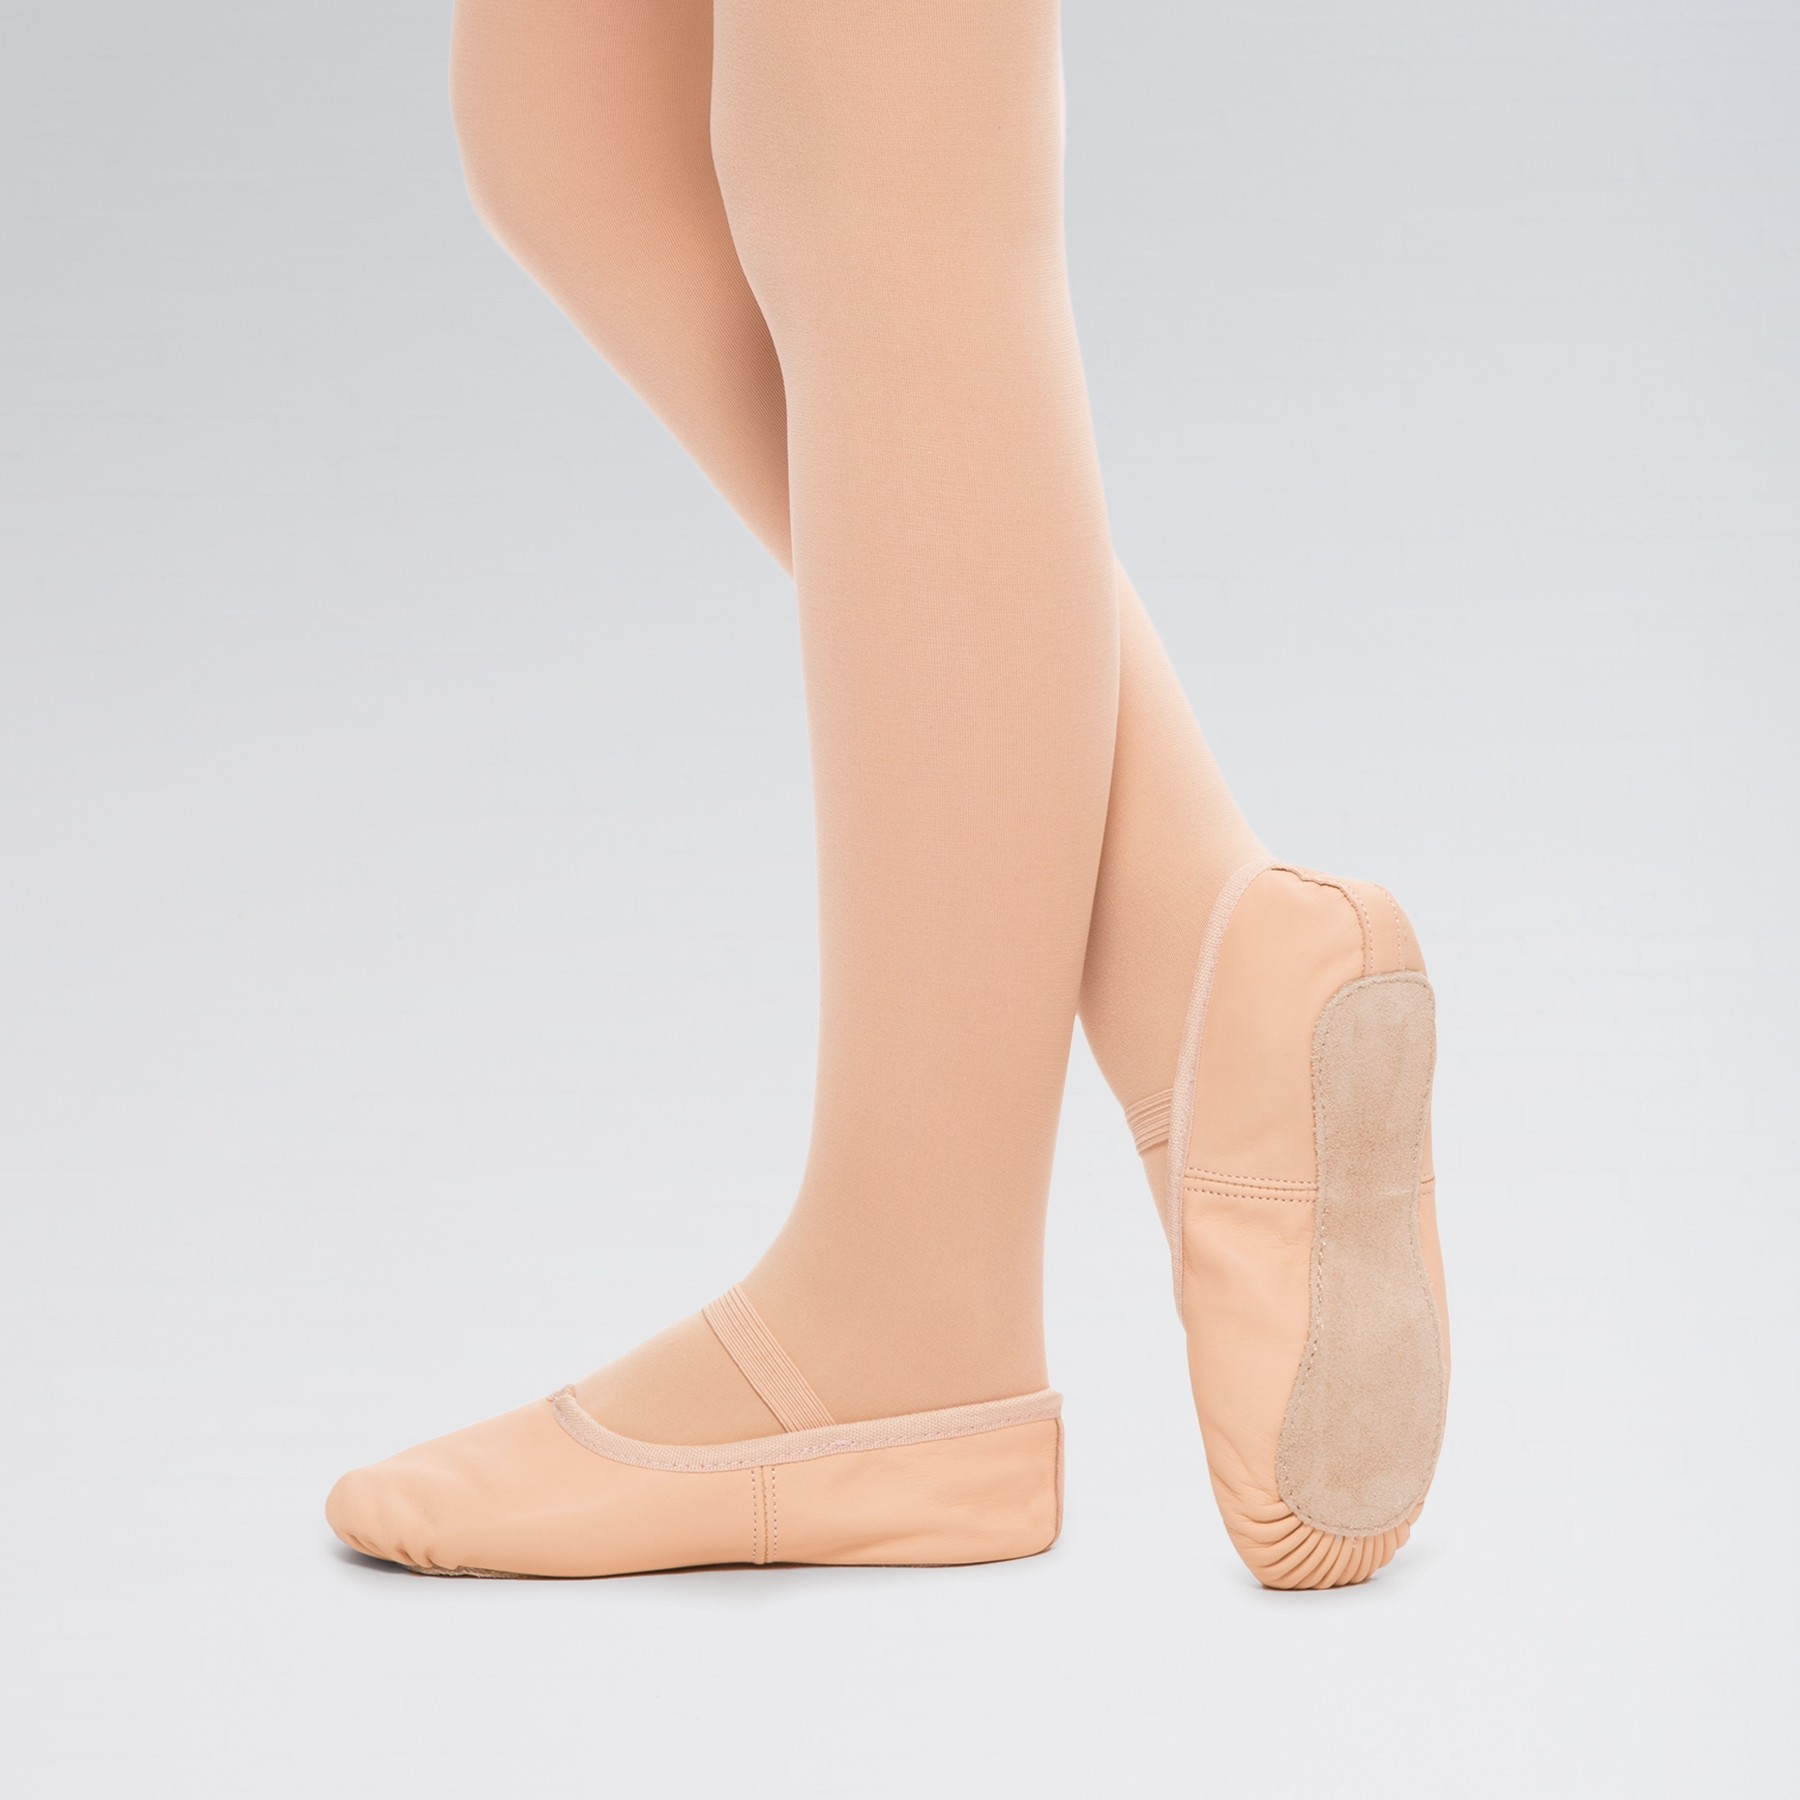 Revolution Student Full Sole Leather Ballet Shoes